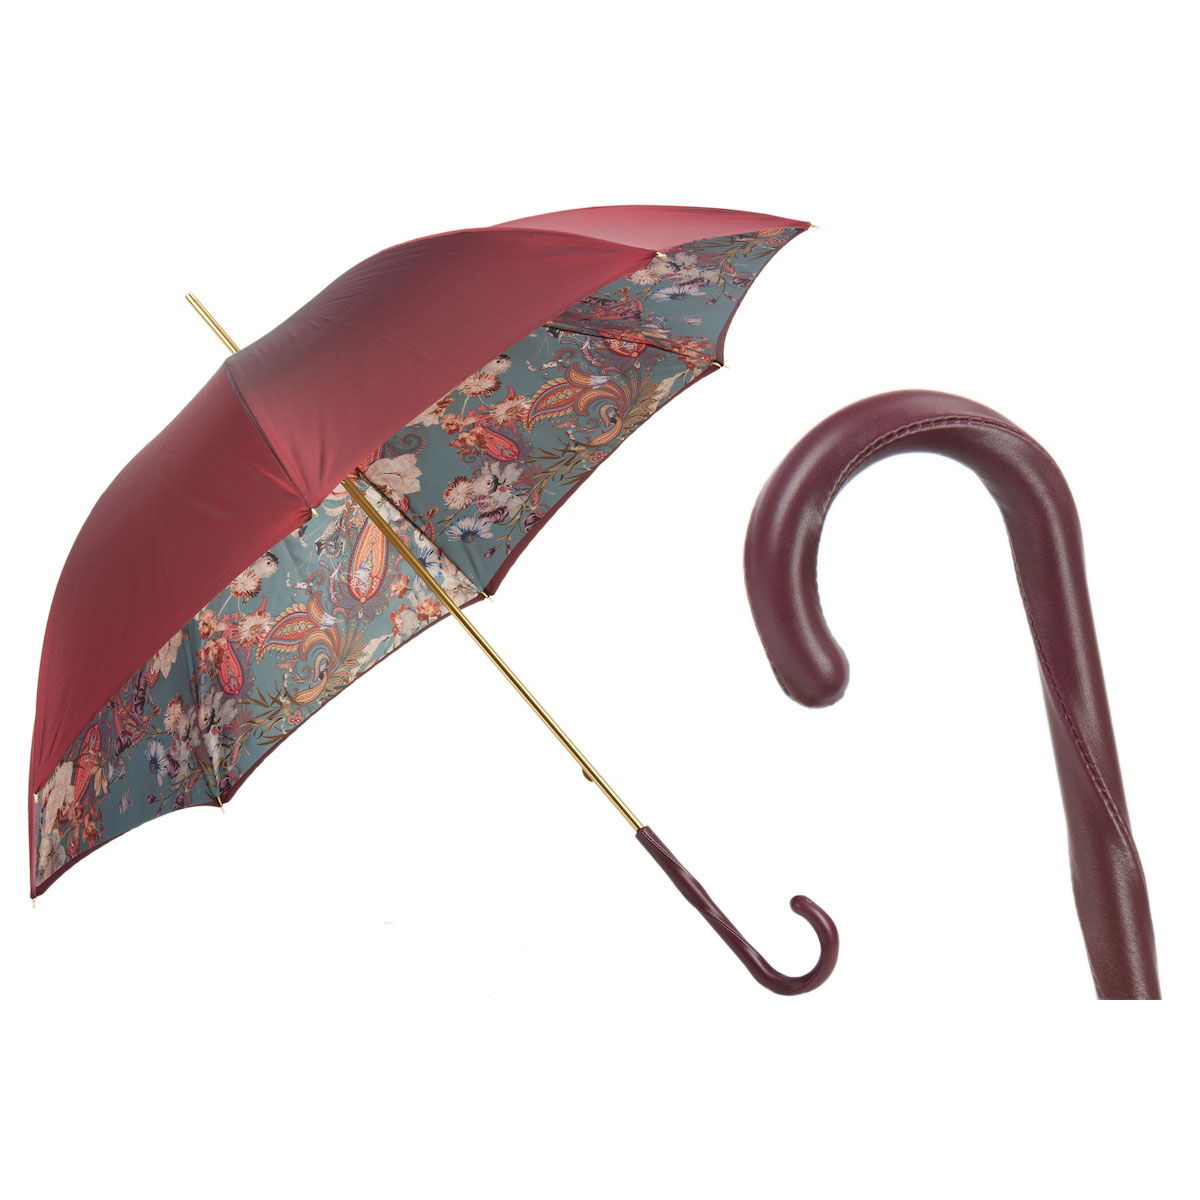 Pasotti Burgundy Women's Umbrella with Classic Design